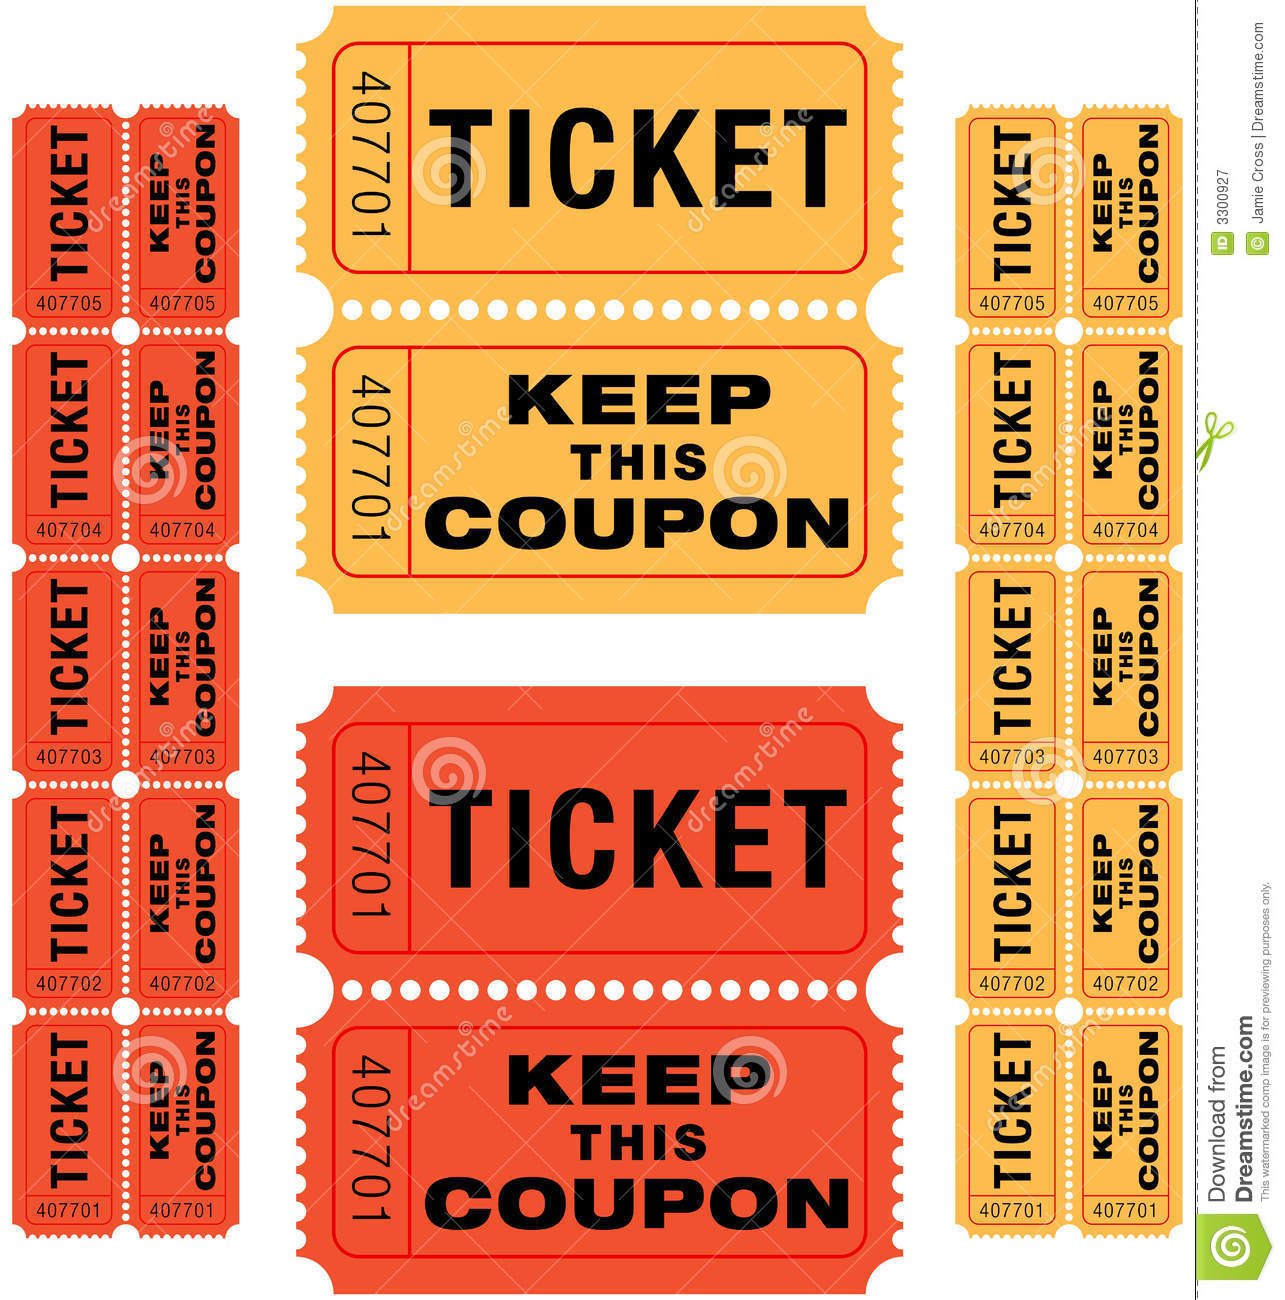 raffle stock photos images pictures images raffle tickets royalty stock photography